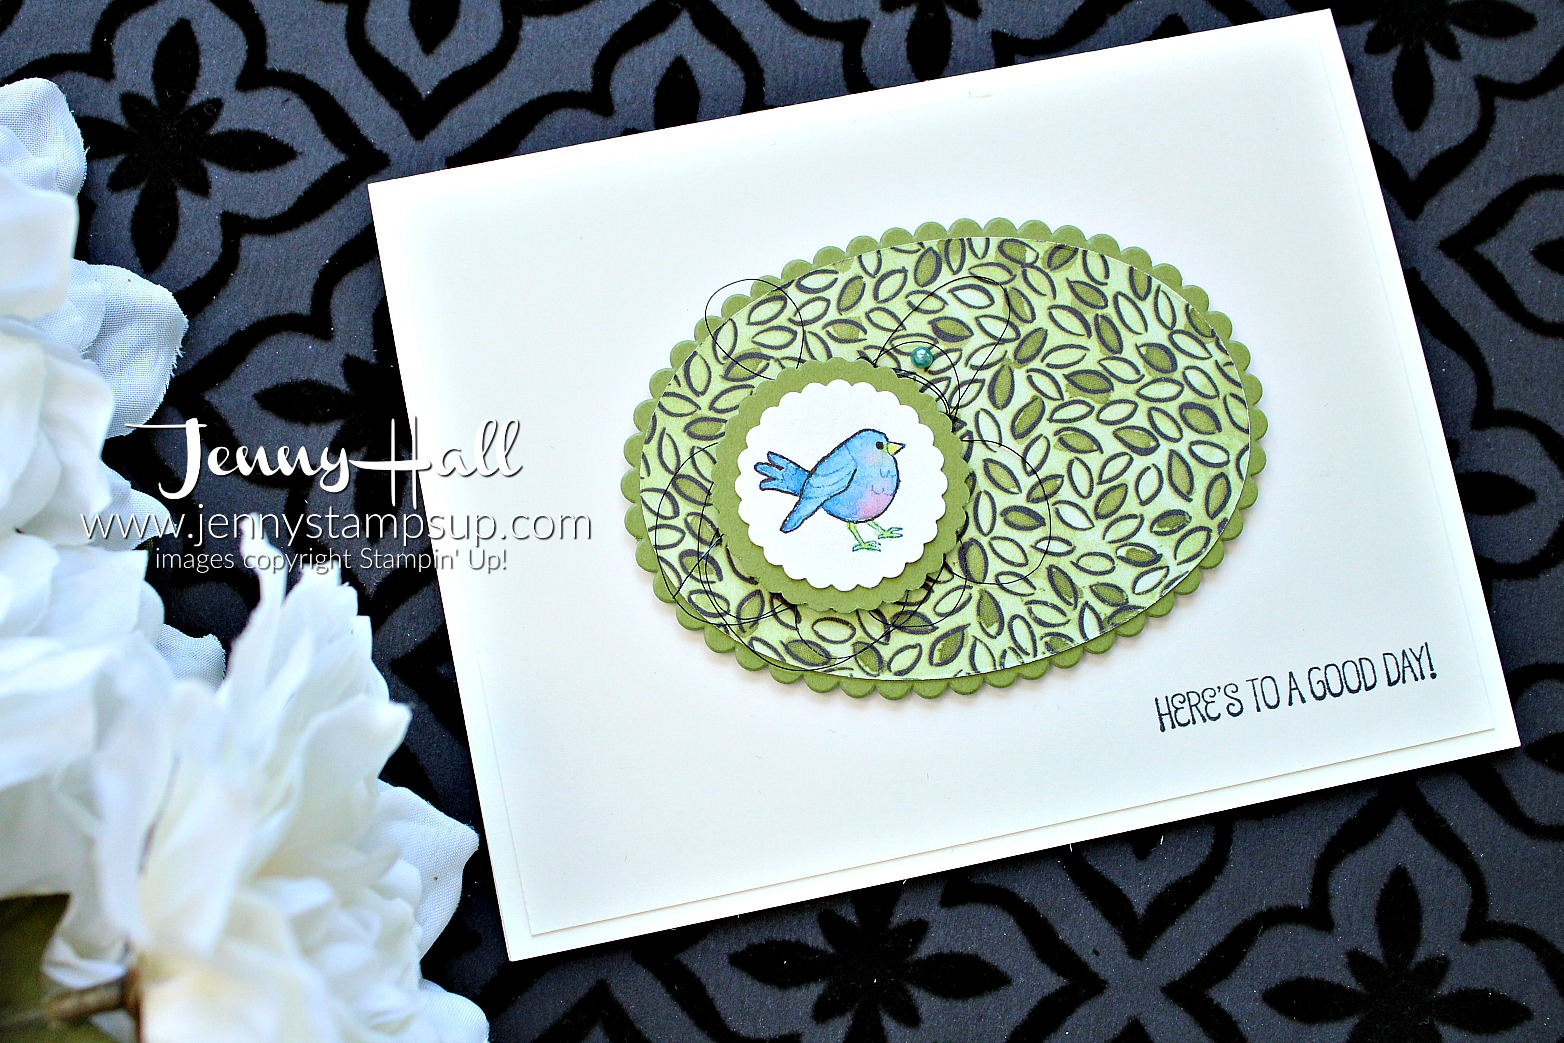 April Go For Greece blog hop card created by Jenny Hall at www.jennyhalldesign.com for #cardmaking #stamping #stampinup #agoodday #sharewhatyoulove #bluebird #bluebirdofhappiness #jennyhall #jennyhalldesign #jennystampsup #bloghop #goforgreece #gfgbh #papercrafting #crafts #nature